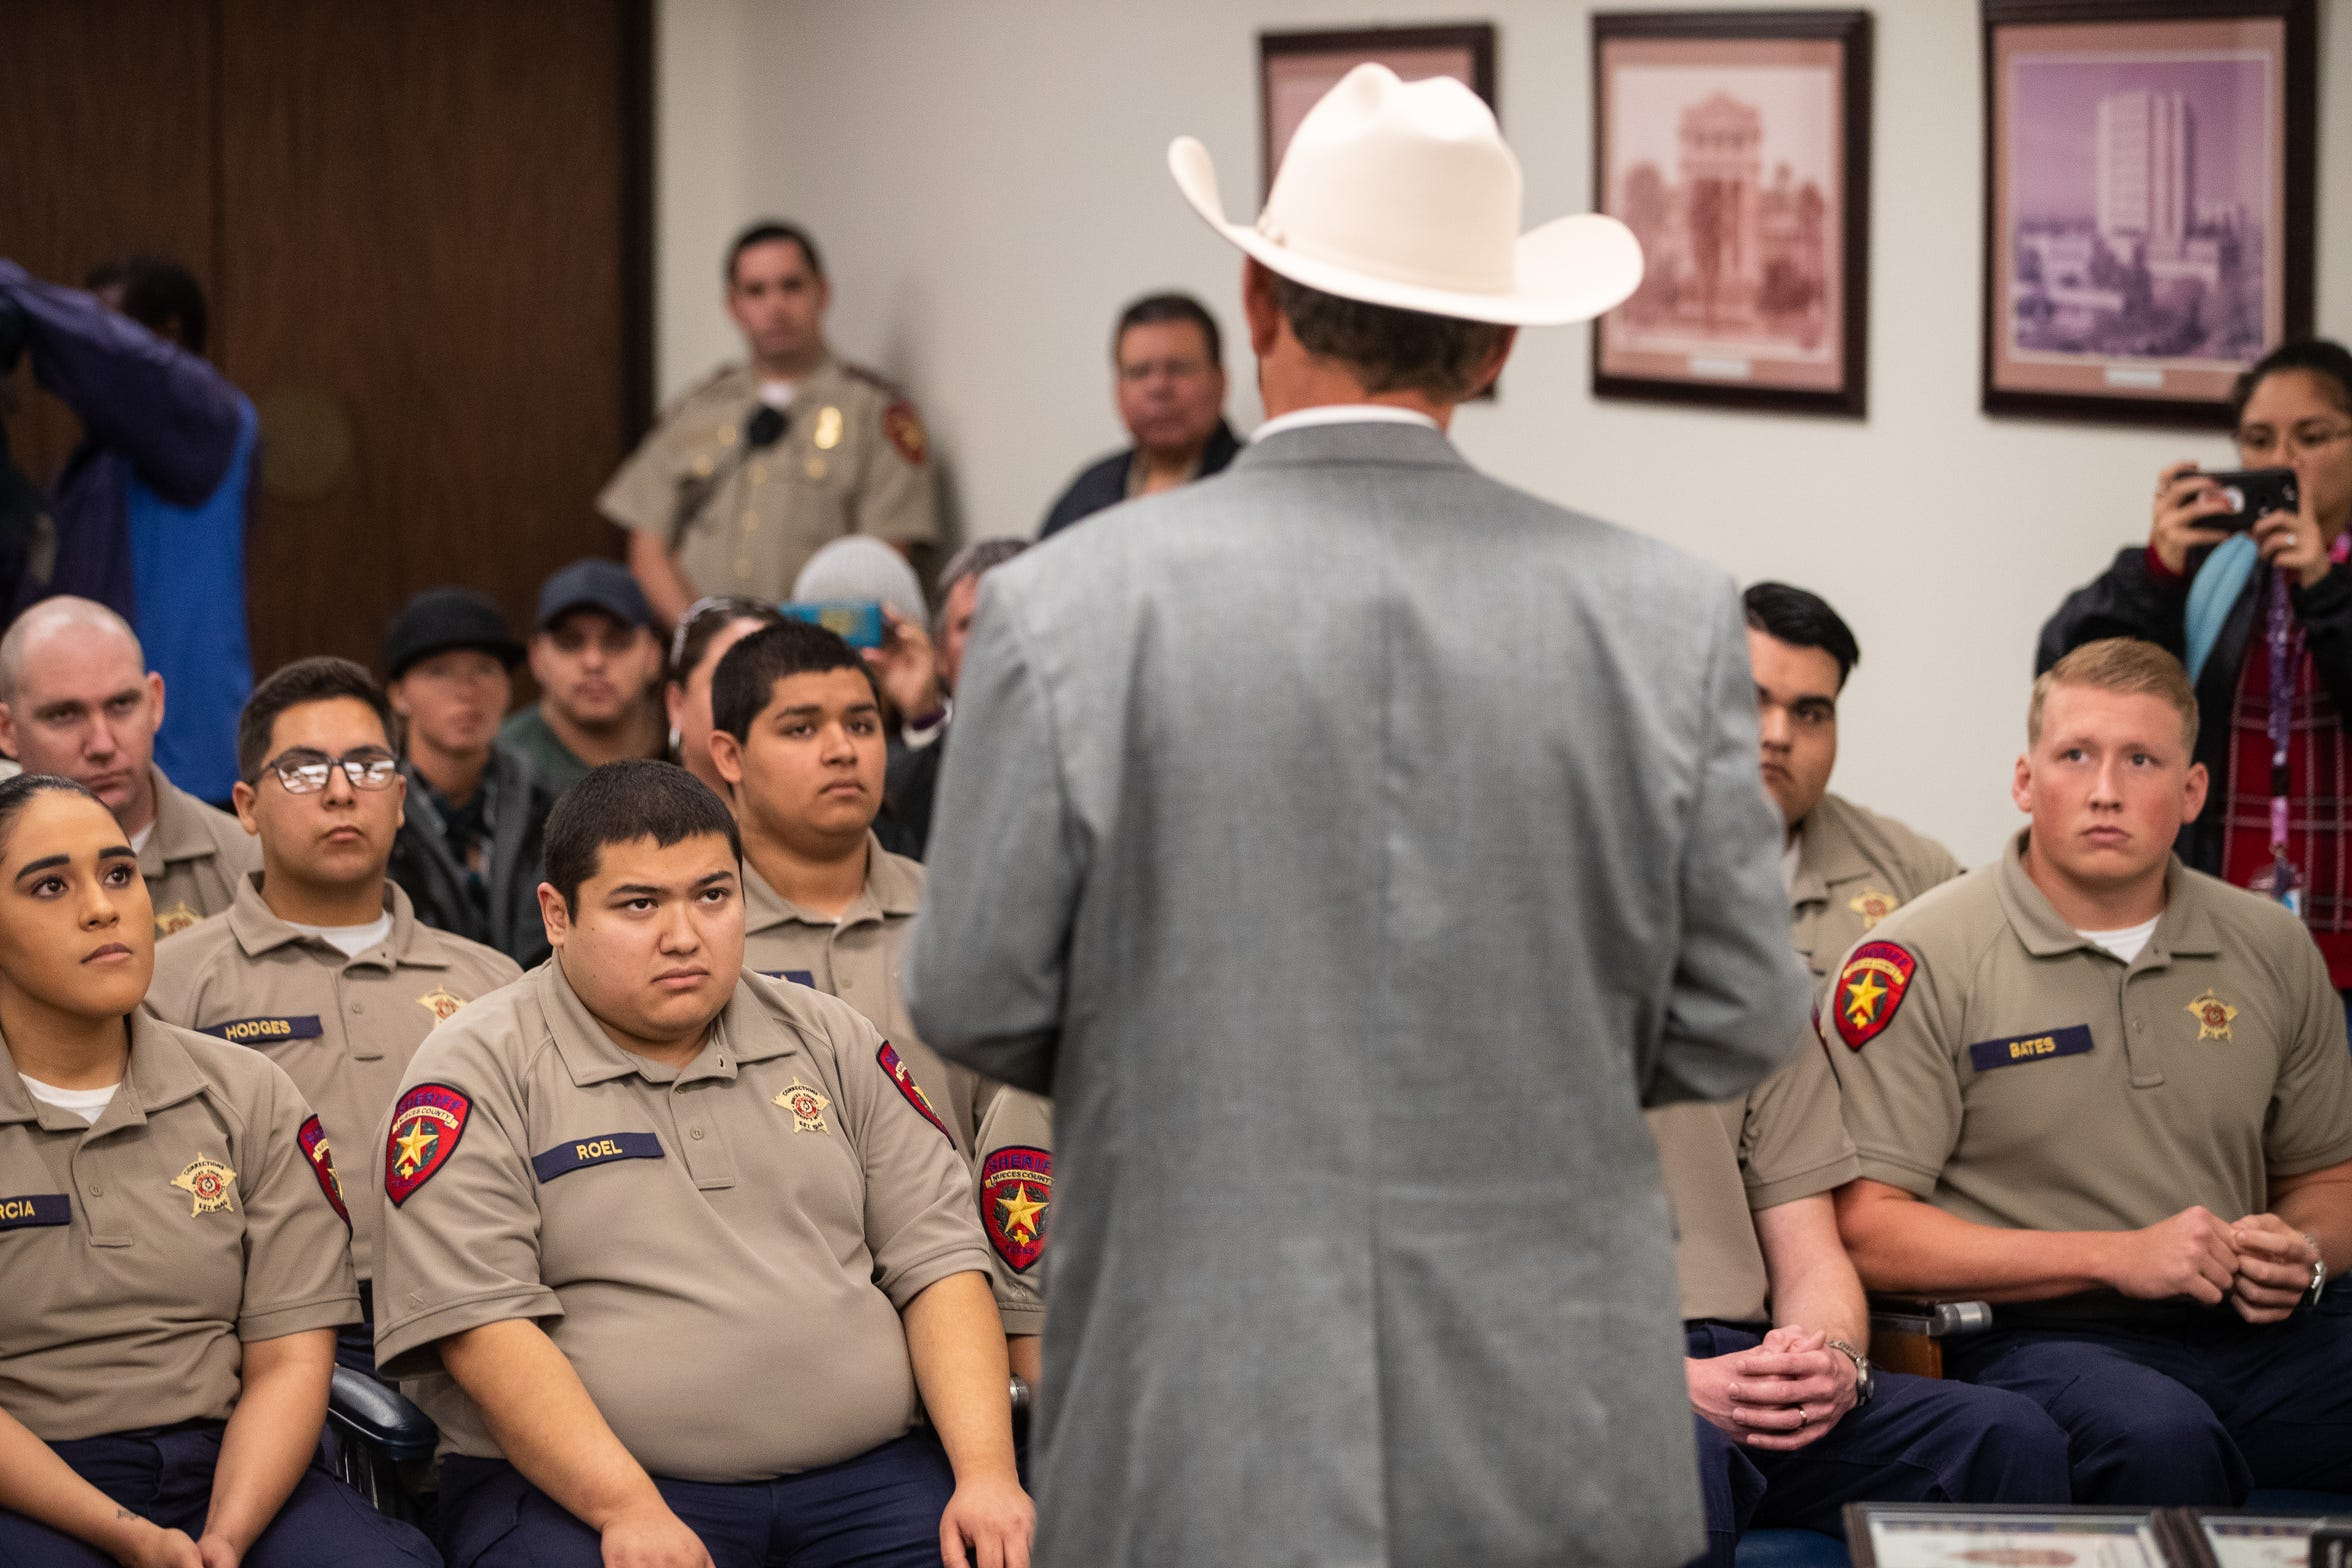 Nueces County Sheriff J.C. Hooper speaks to the 12 new jailers during a graduation ceremony for them on Friday, Nov. 9, 2018.